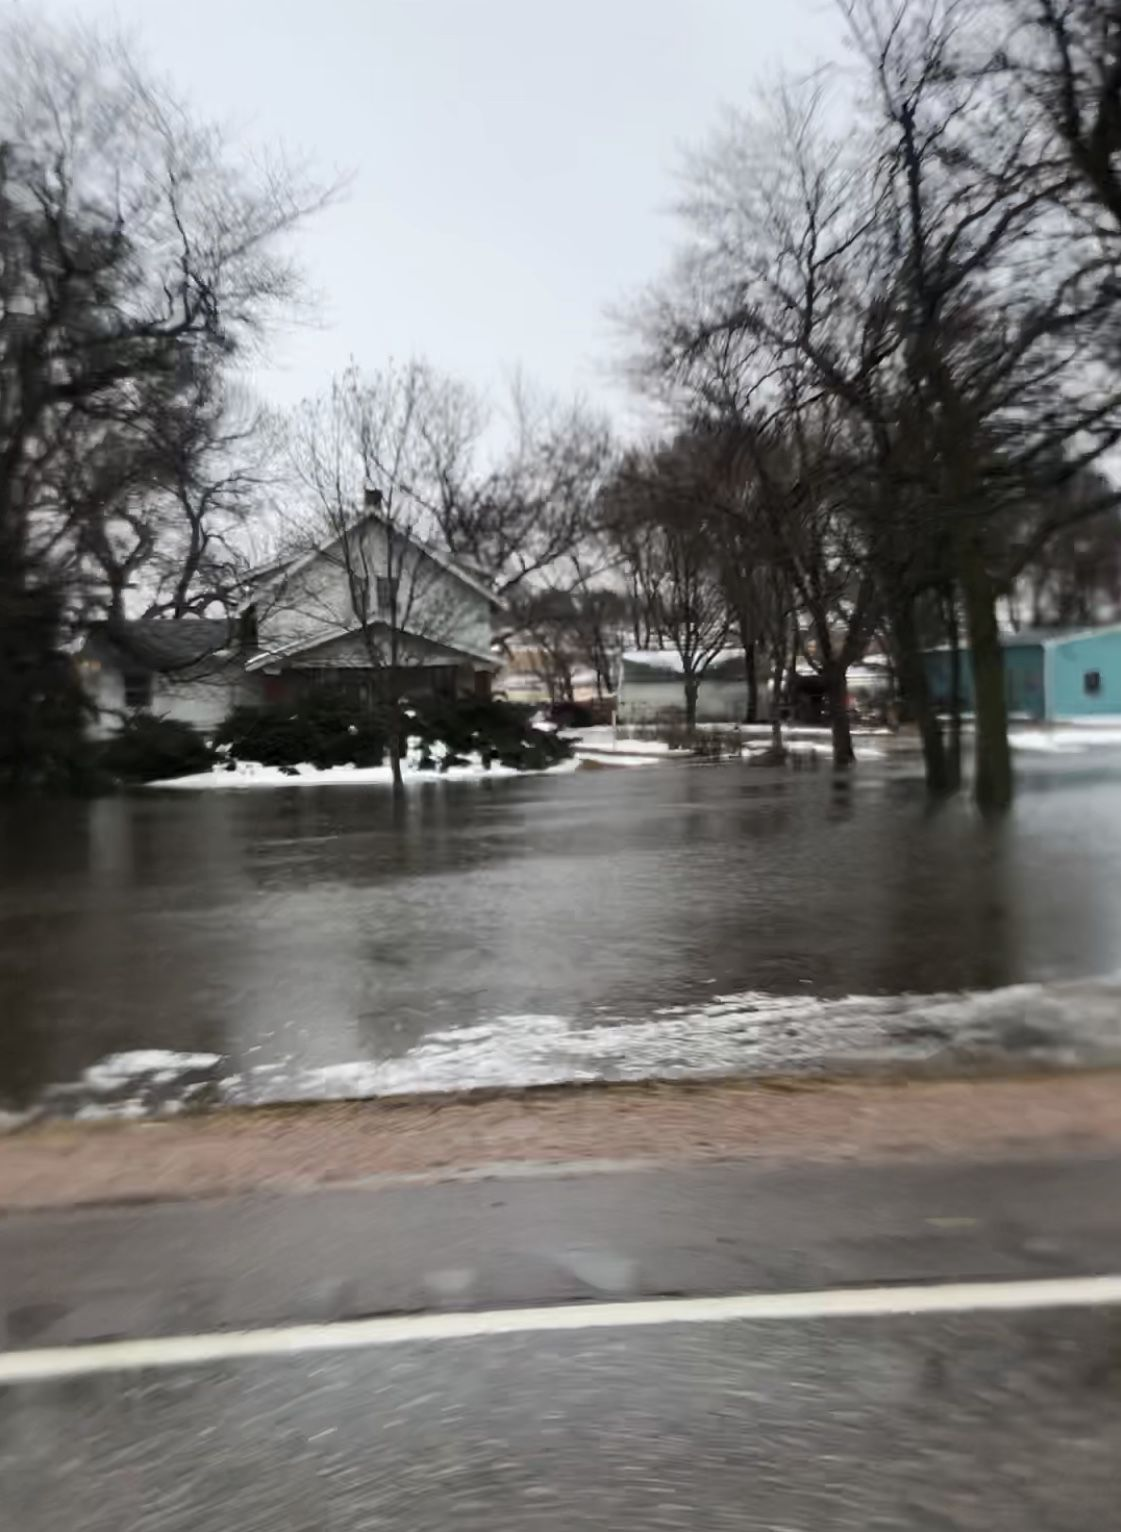 Flood waters cause basement flooding